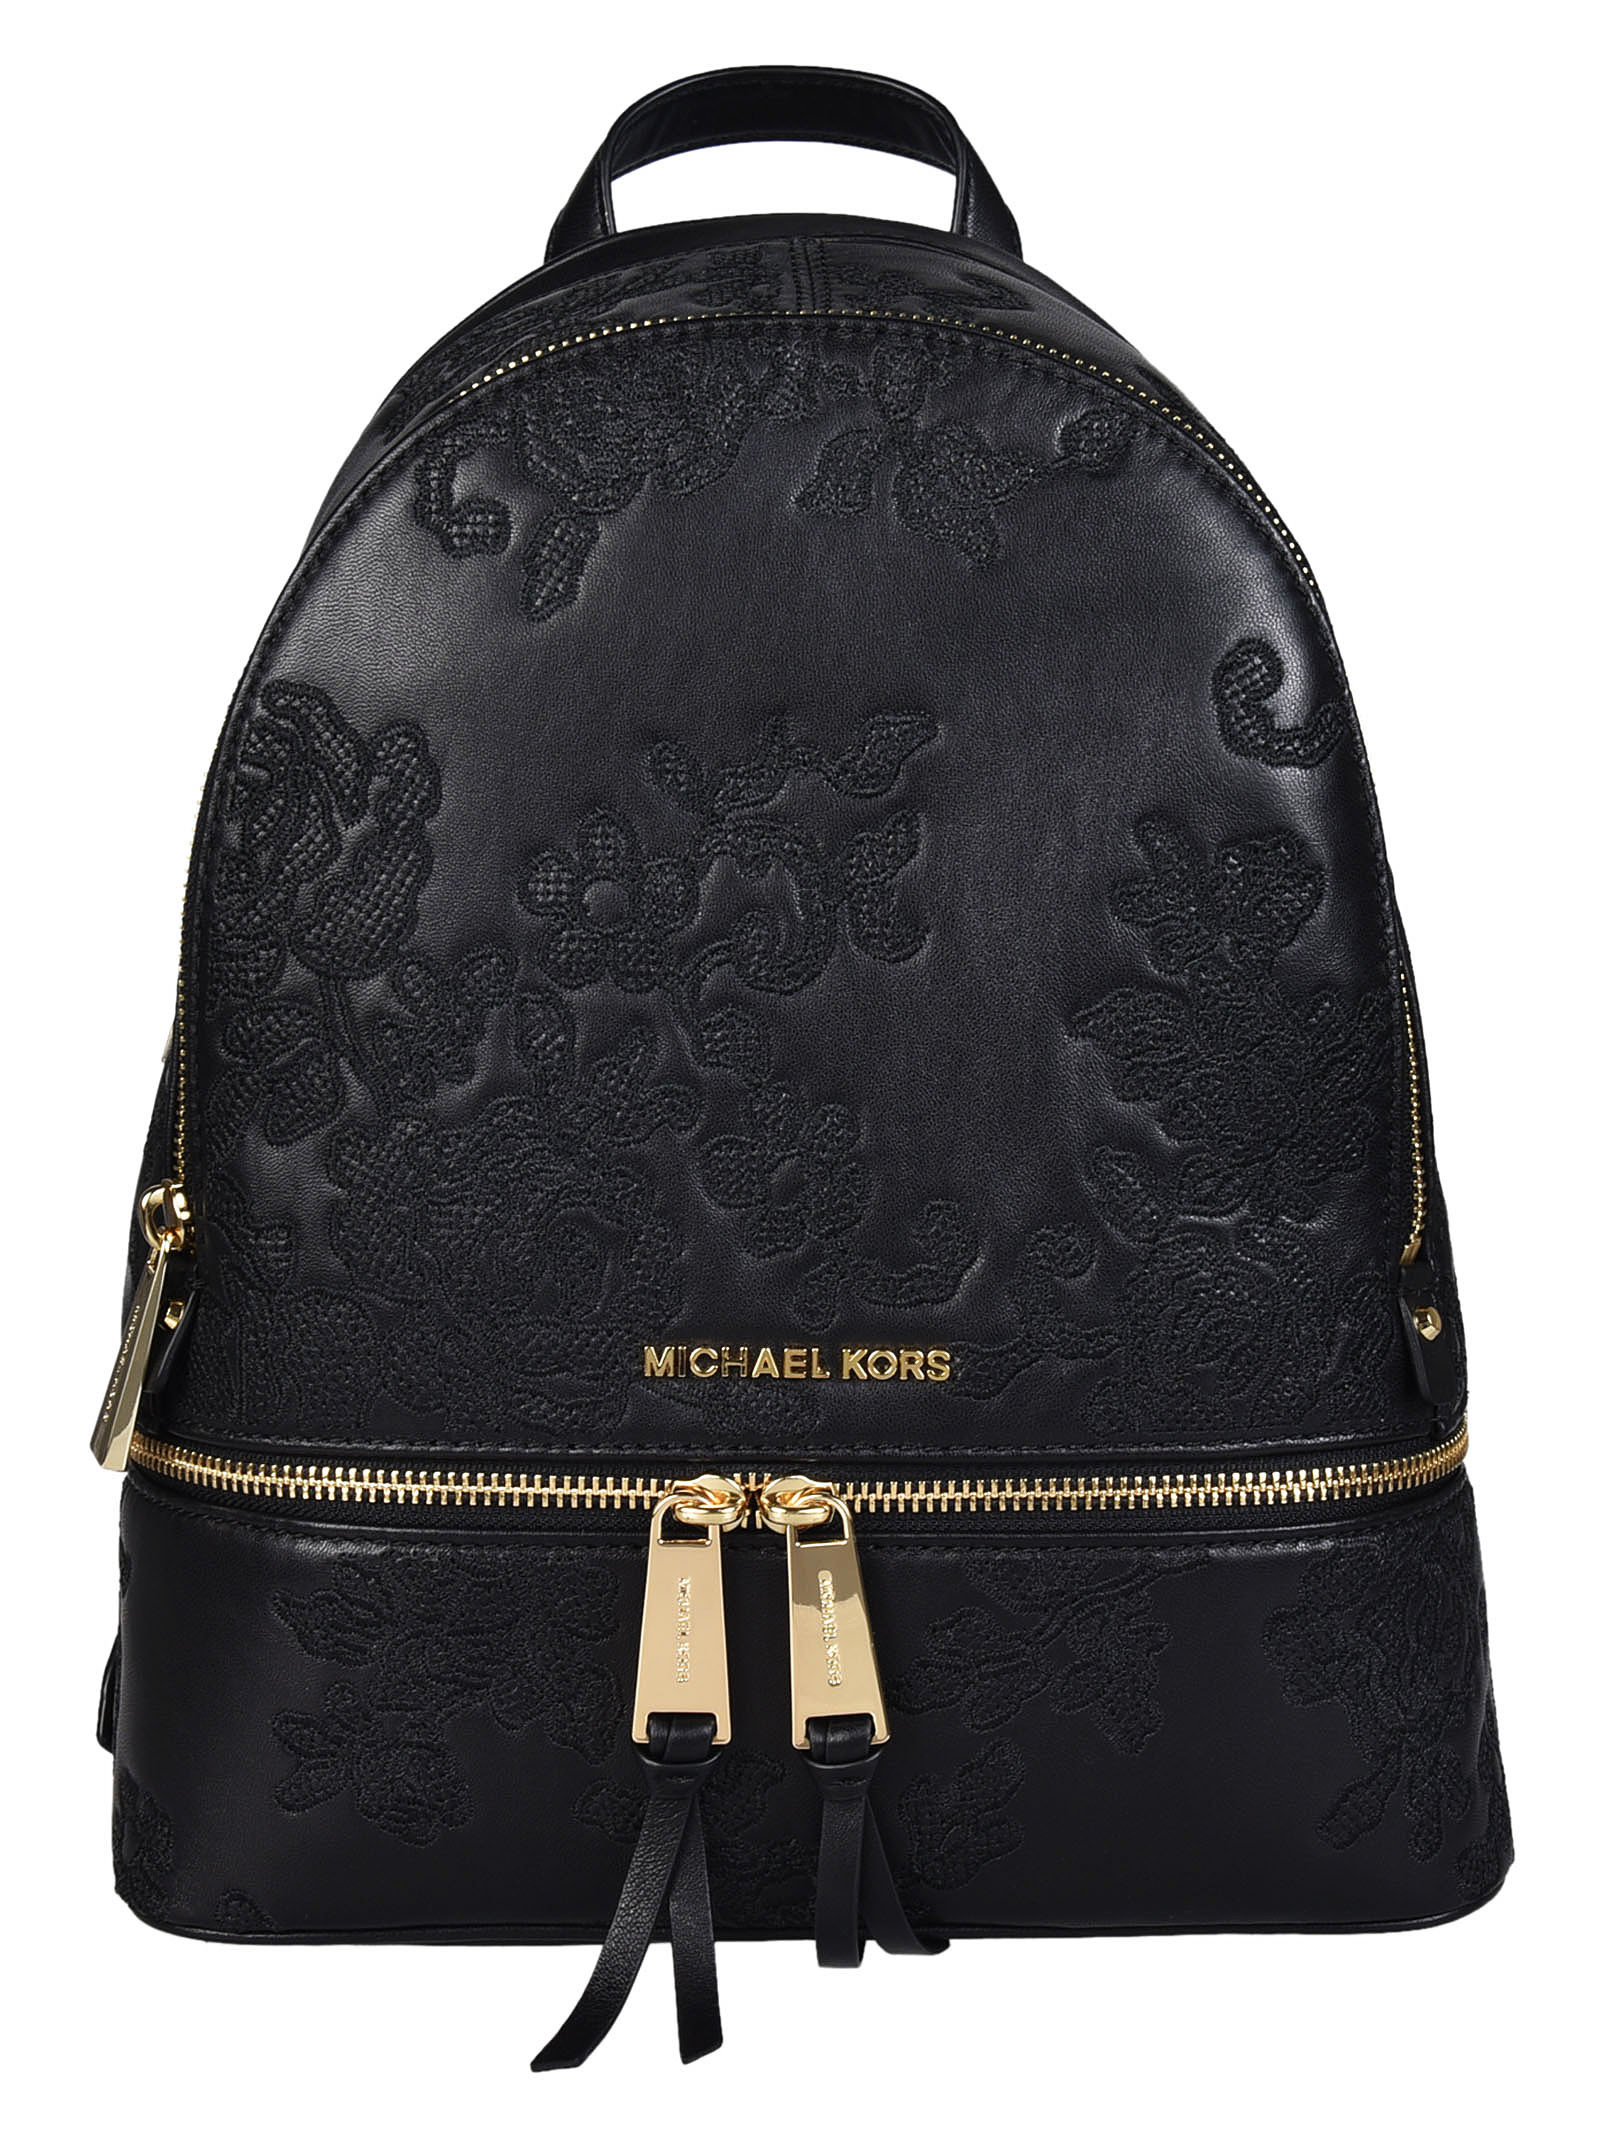 Michael Kors Rhea Lace Backpack